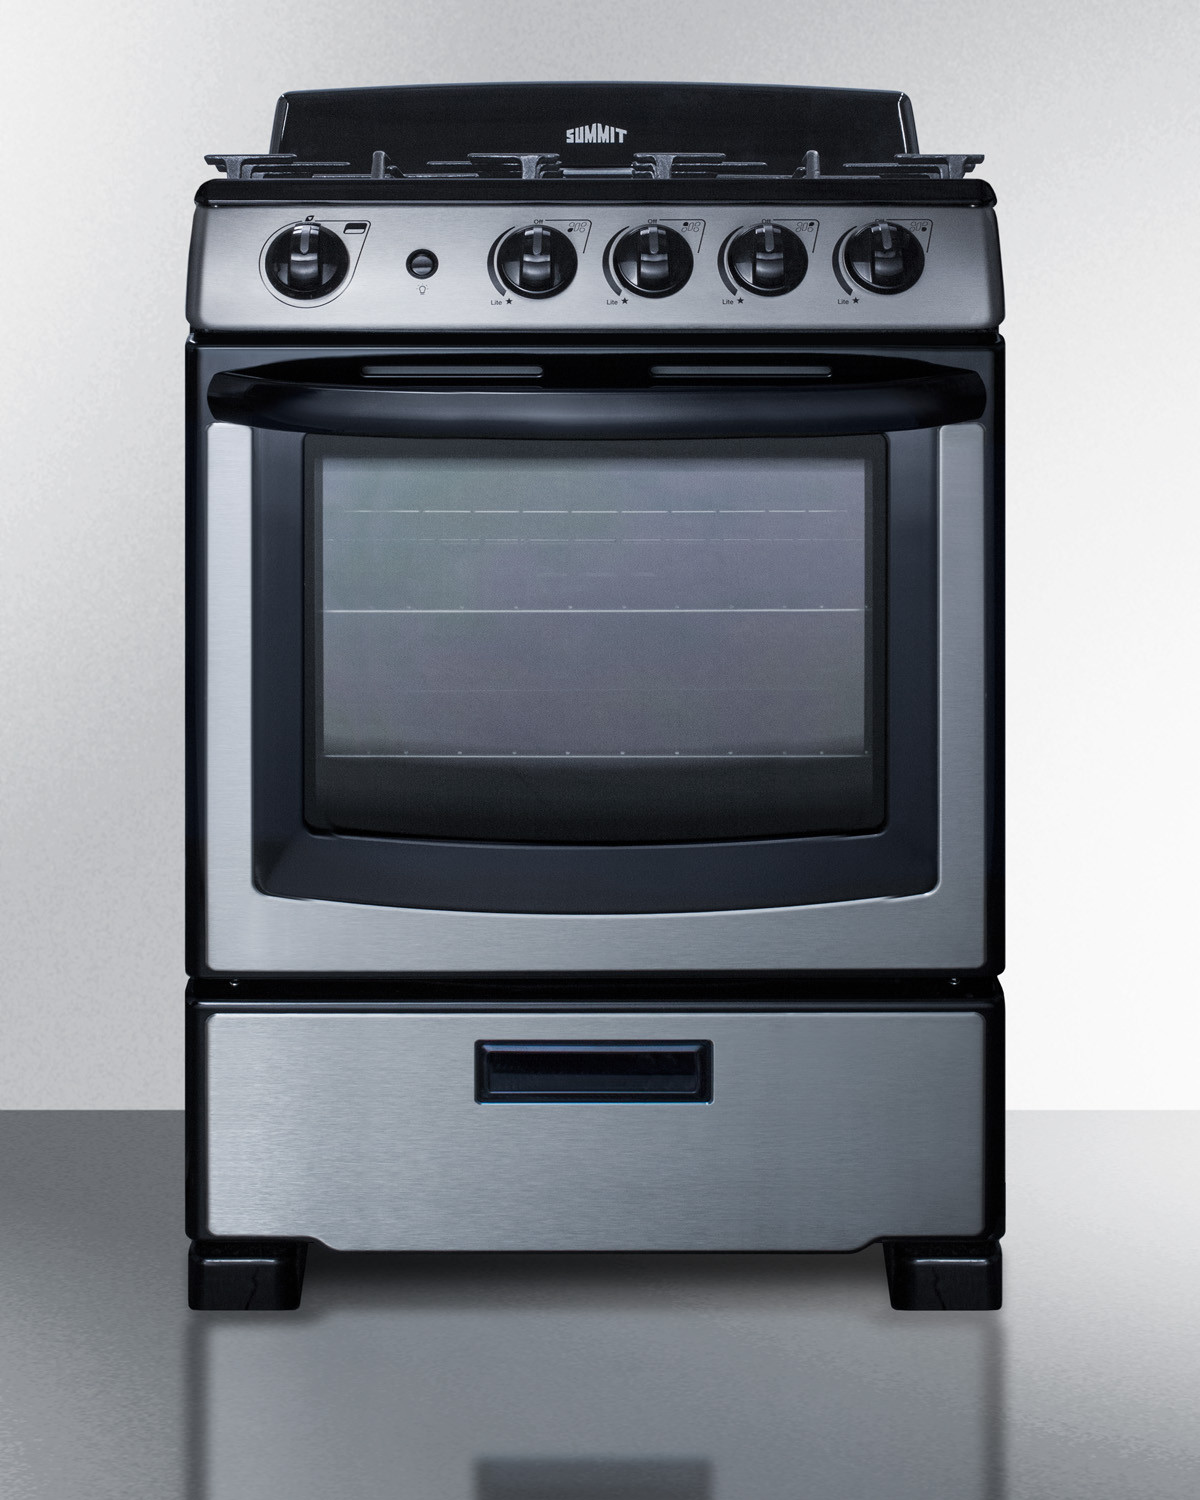 Summit 24 Freestanding Natural Gas Range Stainless Steel Pro247ss Oven Racks Iron Heights Stainless Steel